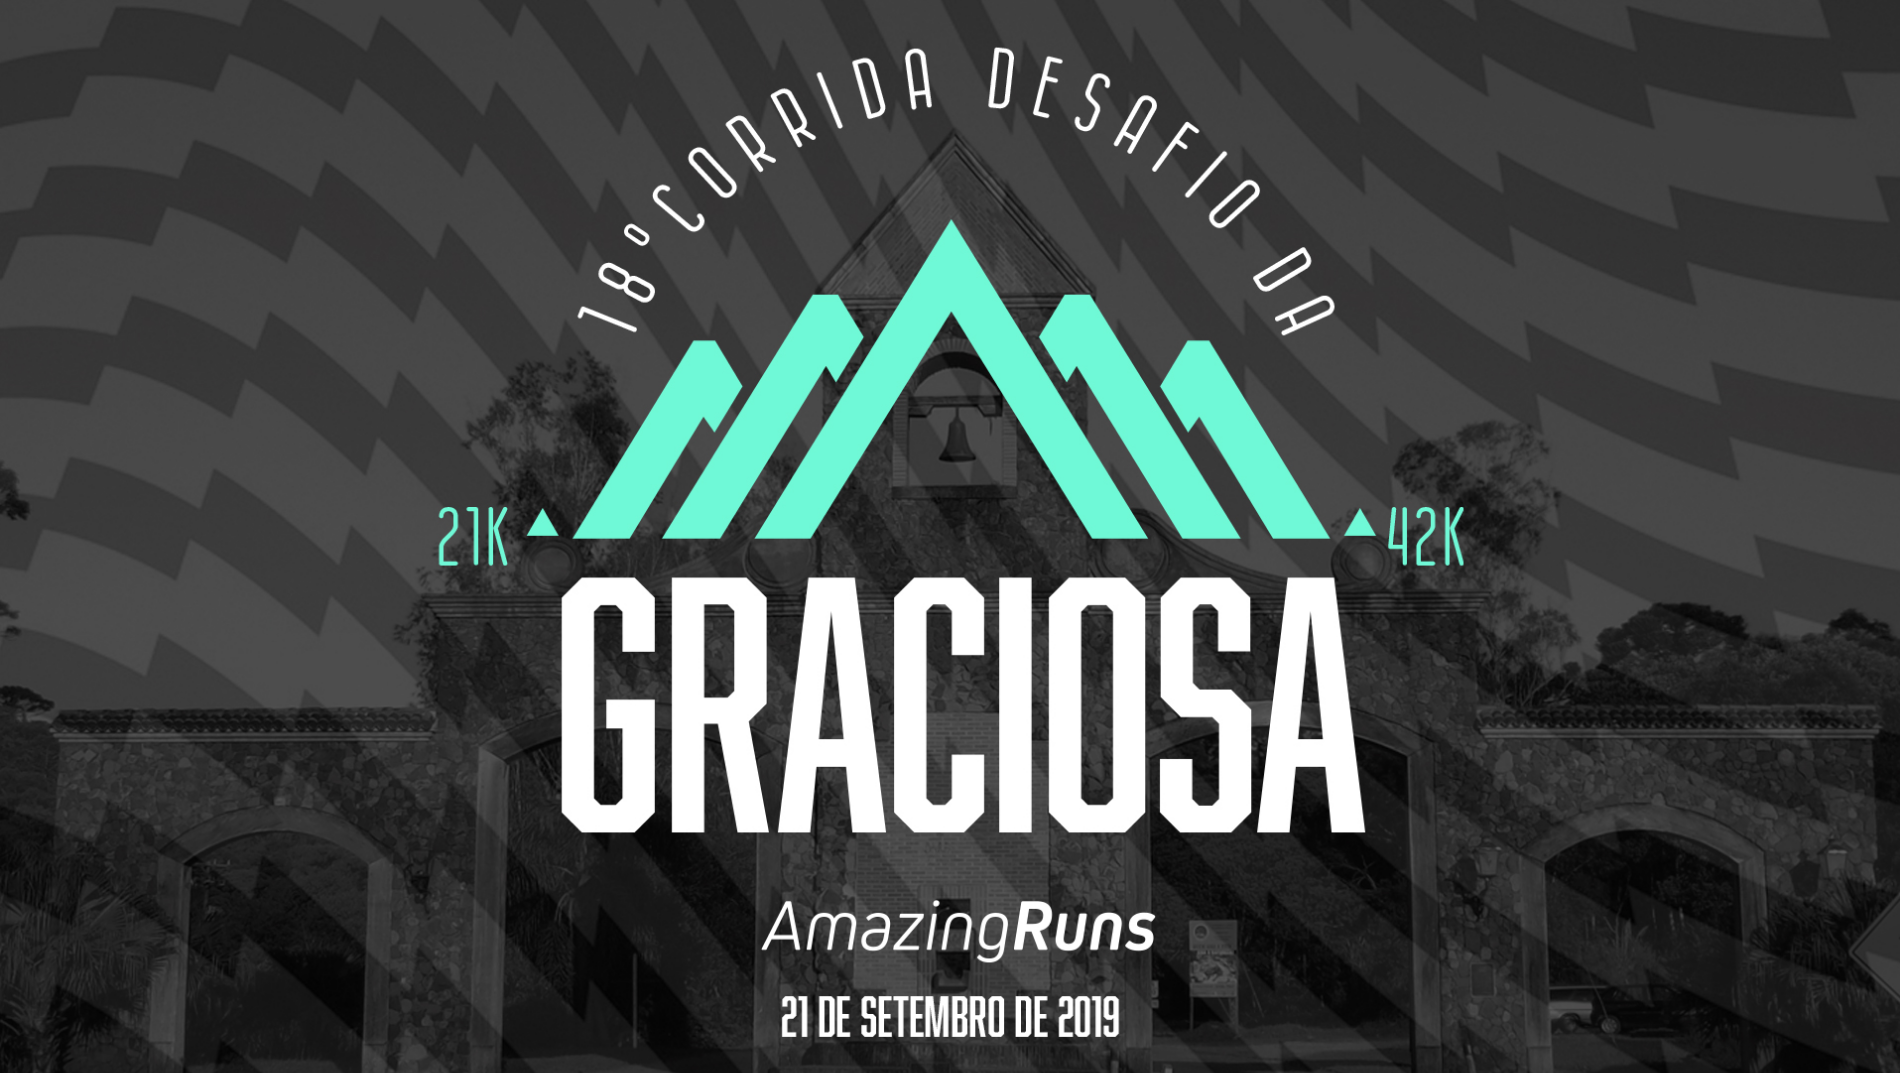 18ª CORRIDA DA GRACIOSA - AMAZING RUNS - 2019